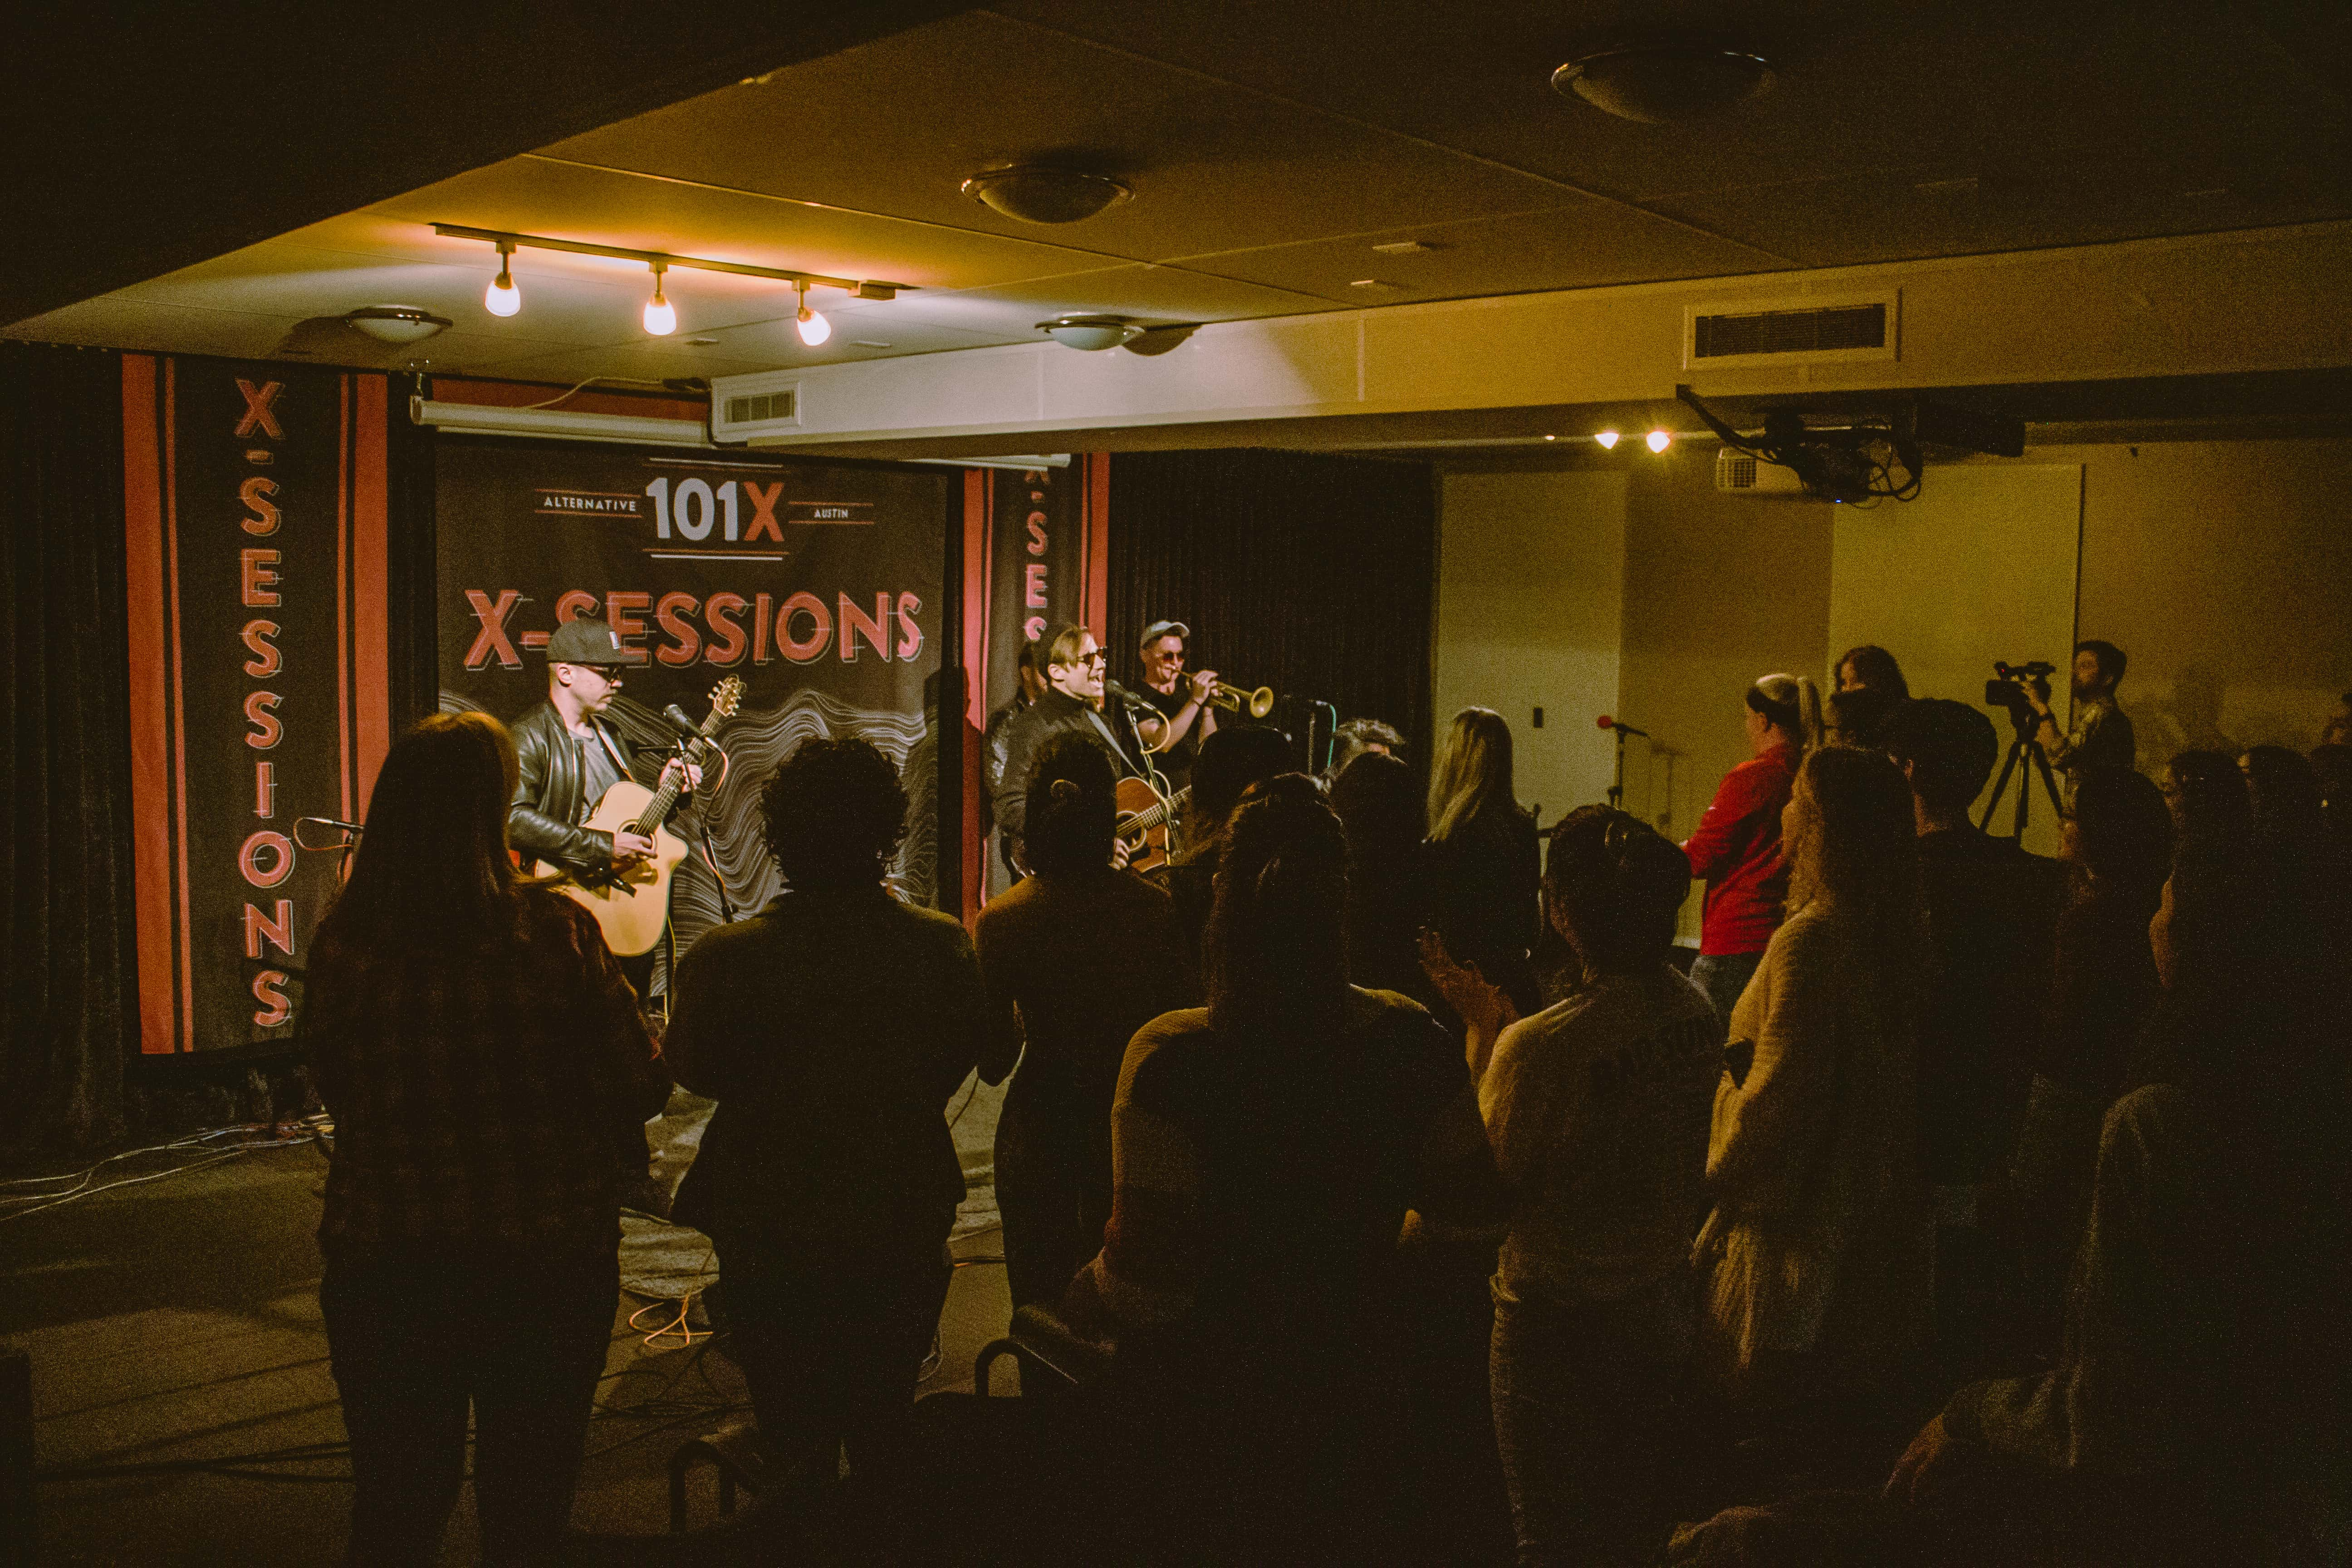 Crowd during 101X-Session with Saint Motel